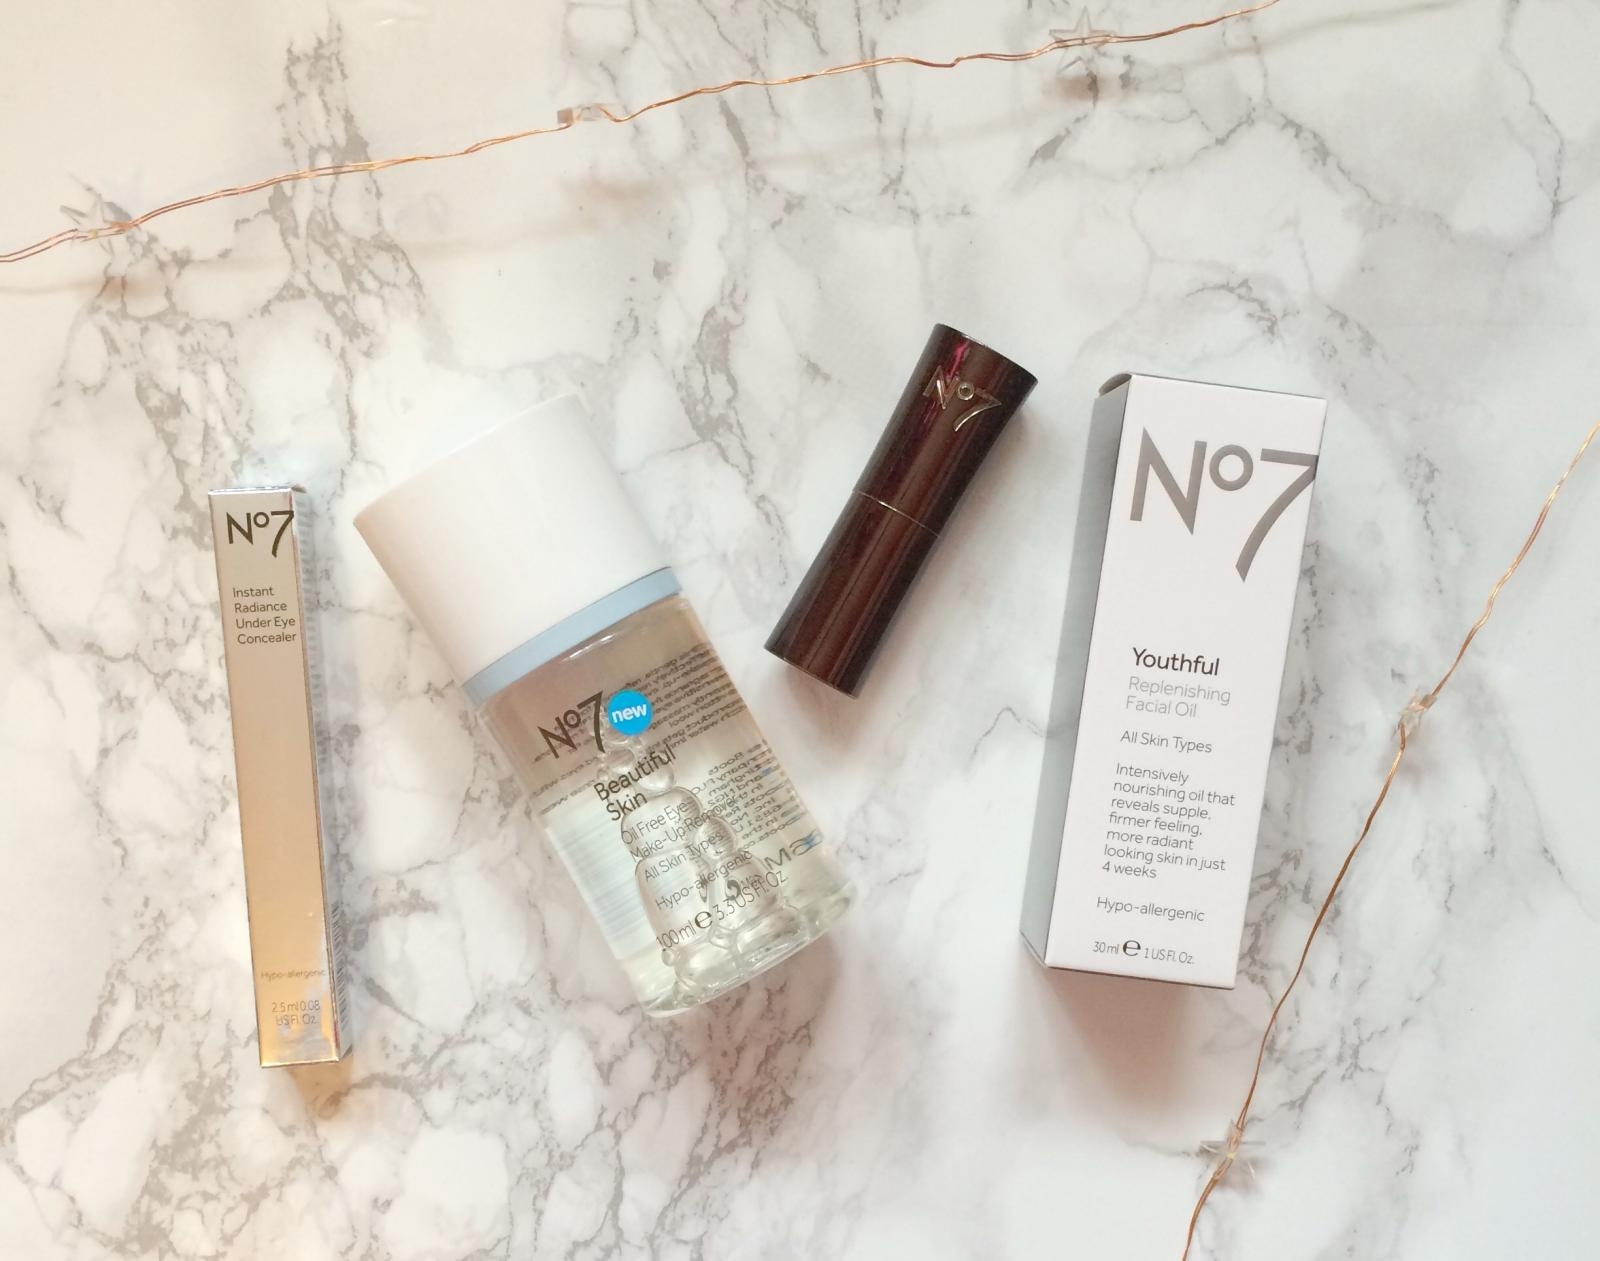 Boots No7 Skincare and Makeup Haul